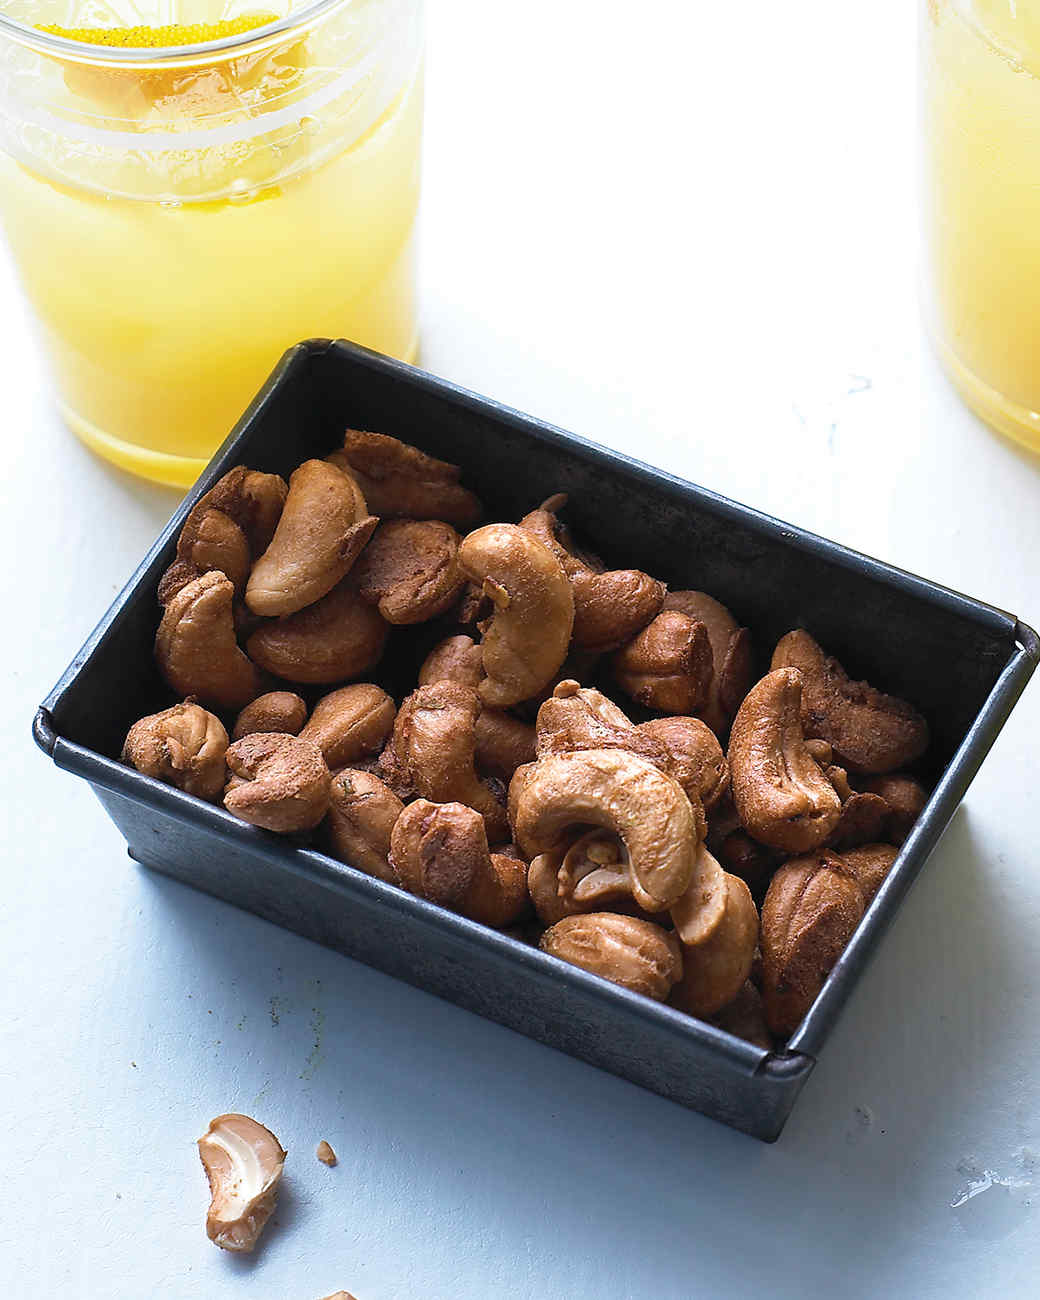 Chili-Lime Cashews